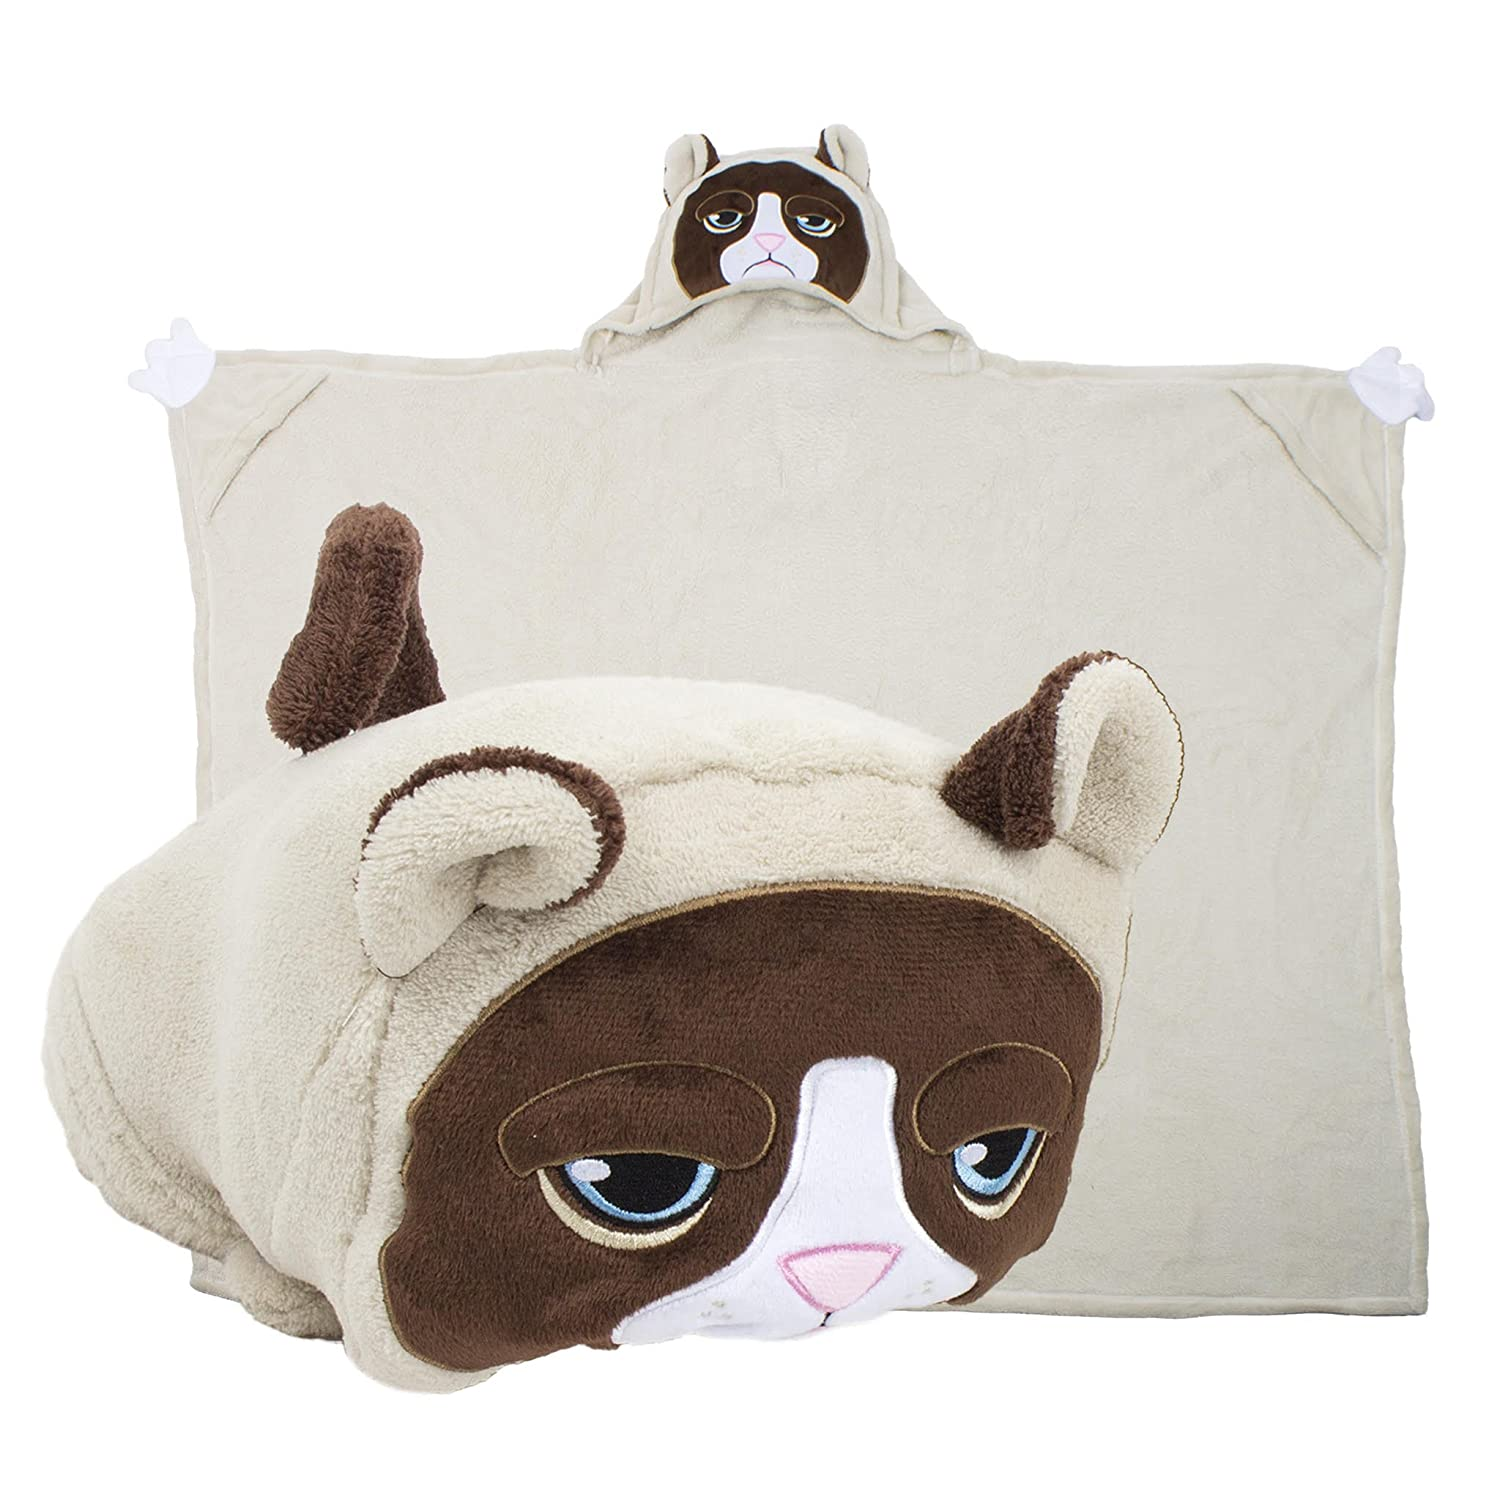 Grumpy Cat Comfy Critters Stuffed Animal Blanket/Huggable Pillow